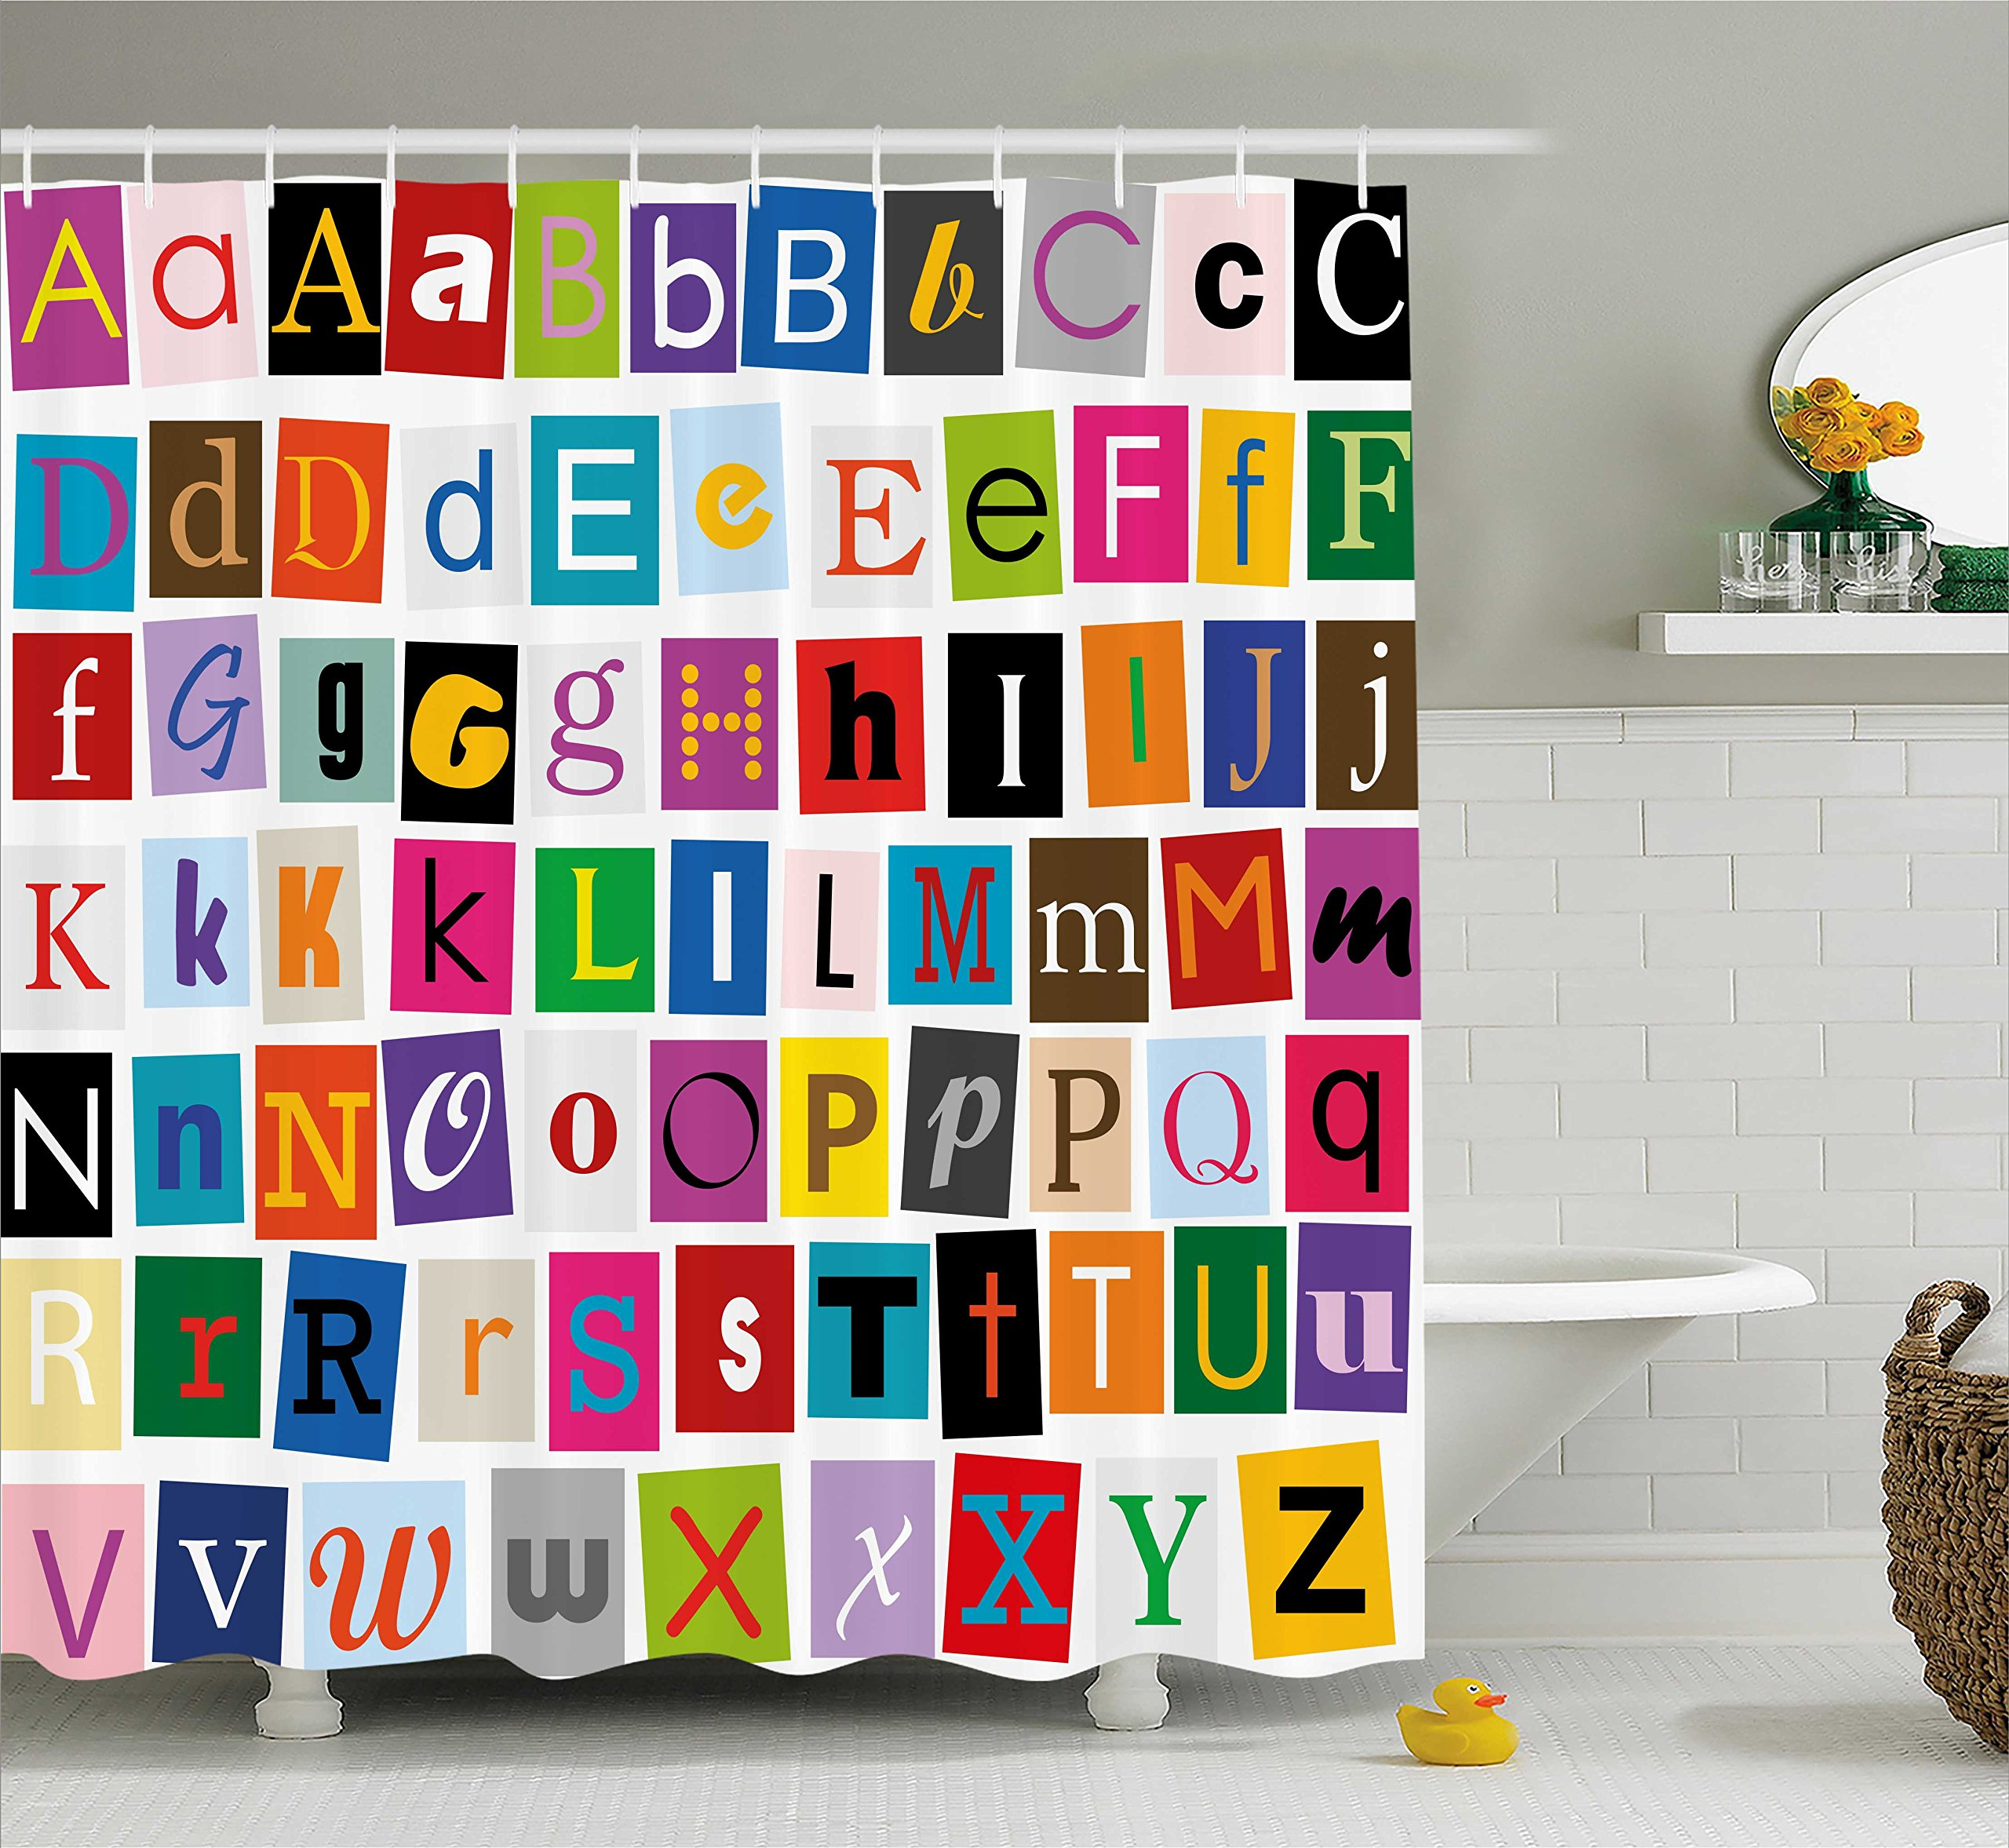 Ambesonne Abstract Shower Curtain by, Alphabet Letters Colorful Typography Languages Principle Art Symbols Illustration, Fabric Bathroom Decor Set with Hooks, 70 Inches, Multicolor